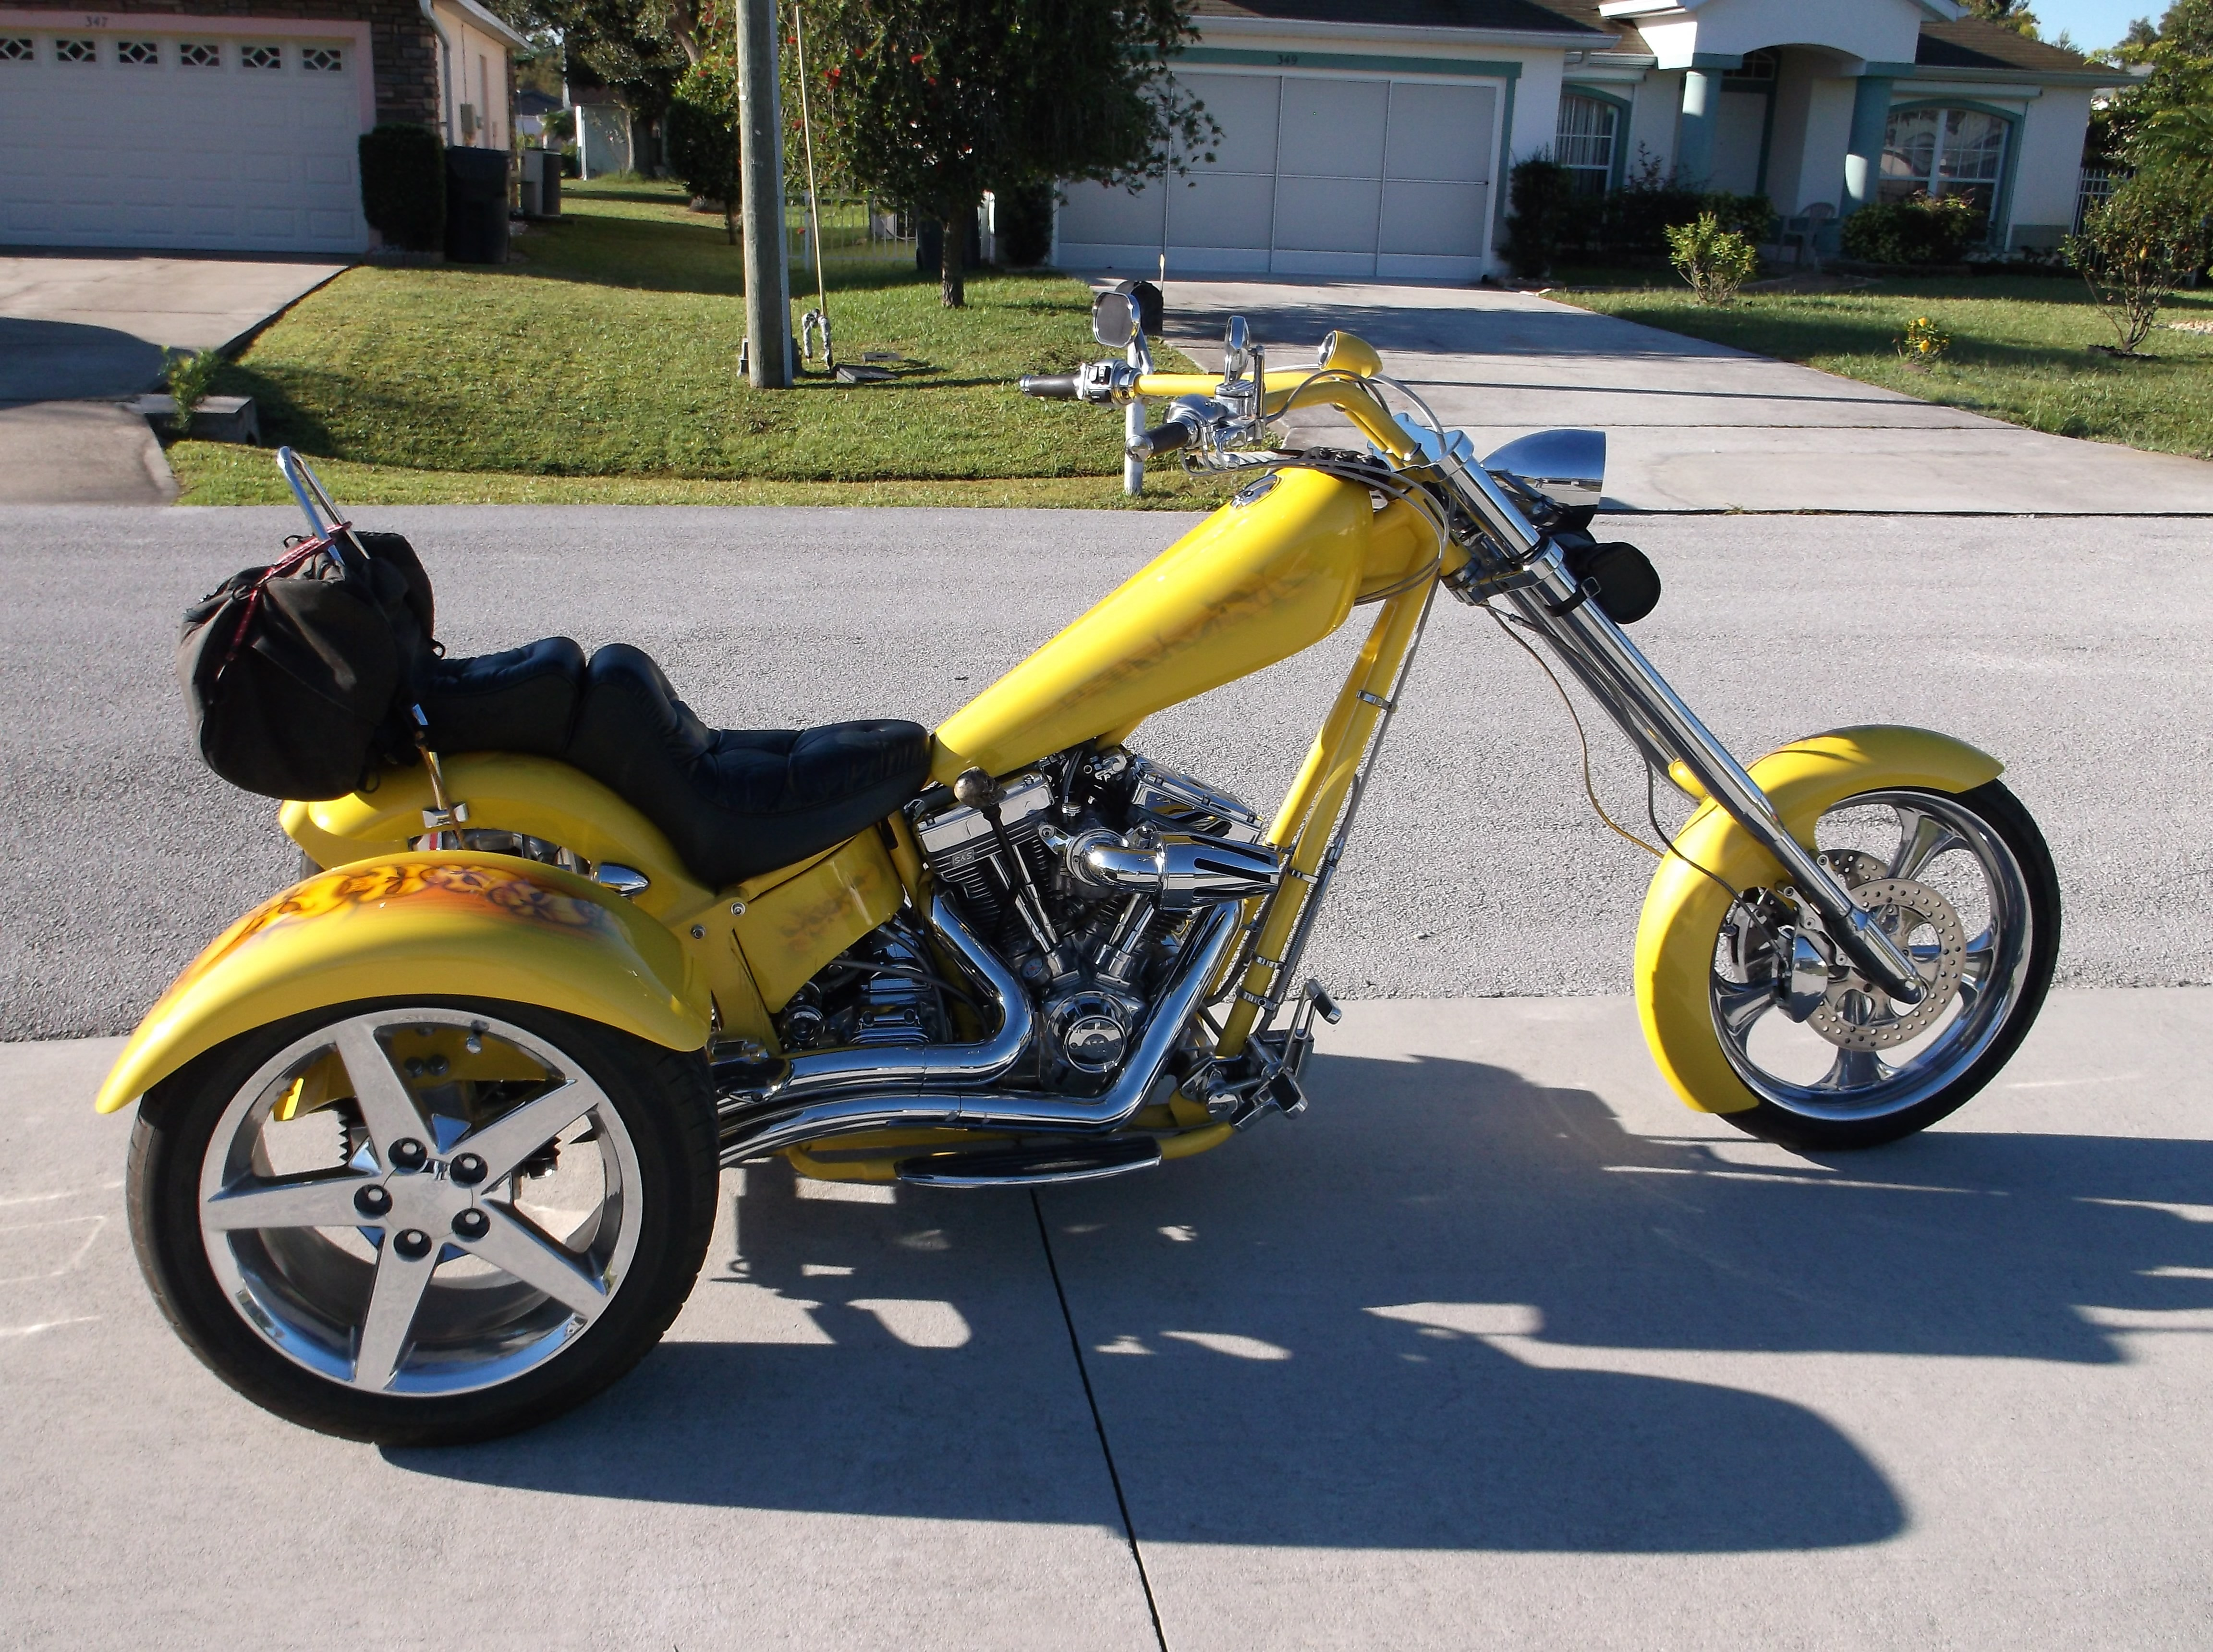 american ironhorse motorcycles for sale 14 bikes page 1 chopperexchange. Black Bedroom Furniture Sets. Home Design Ideas